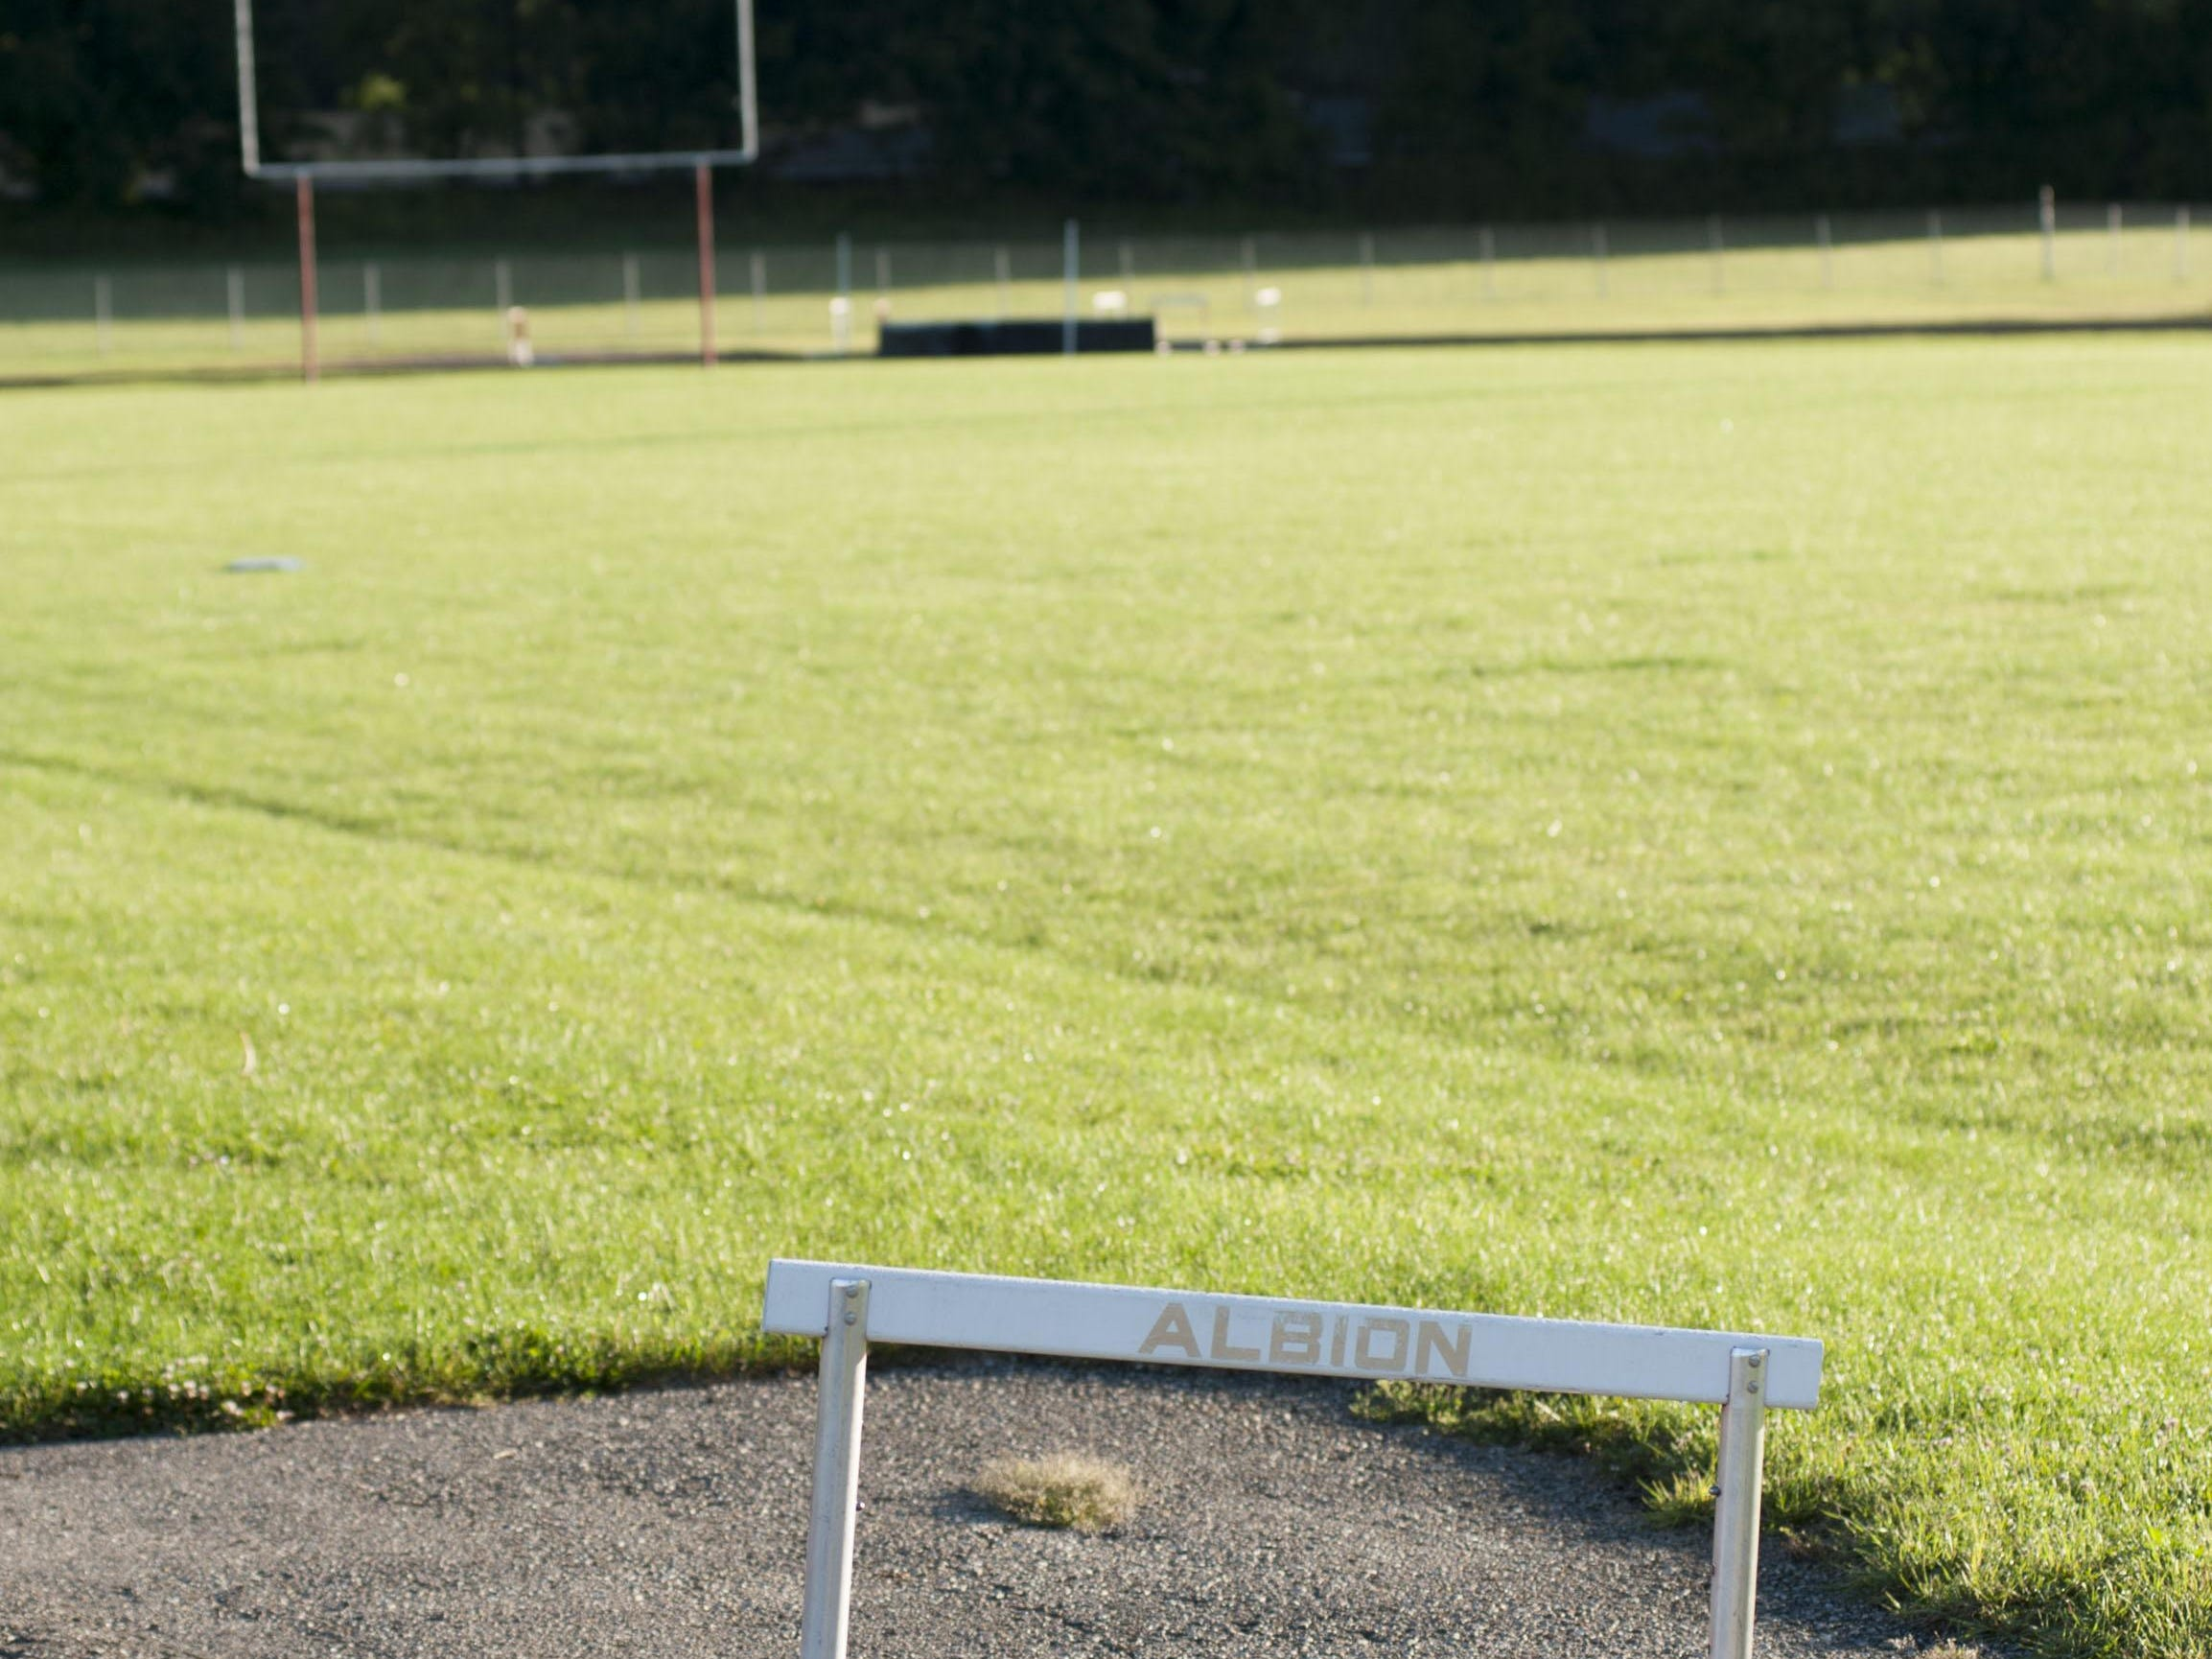 Albion High School's football field sits empty after the school closed its doors in 2013.